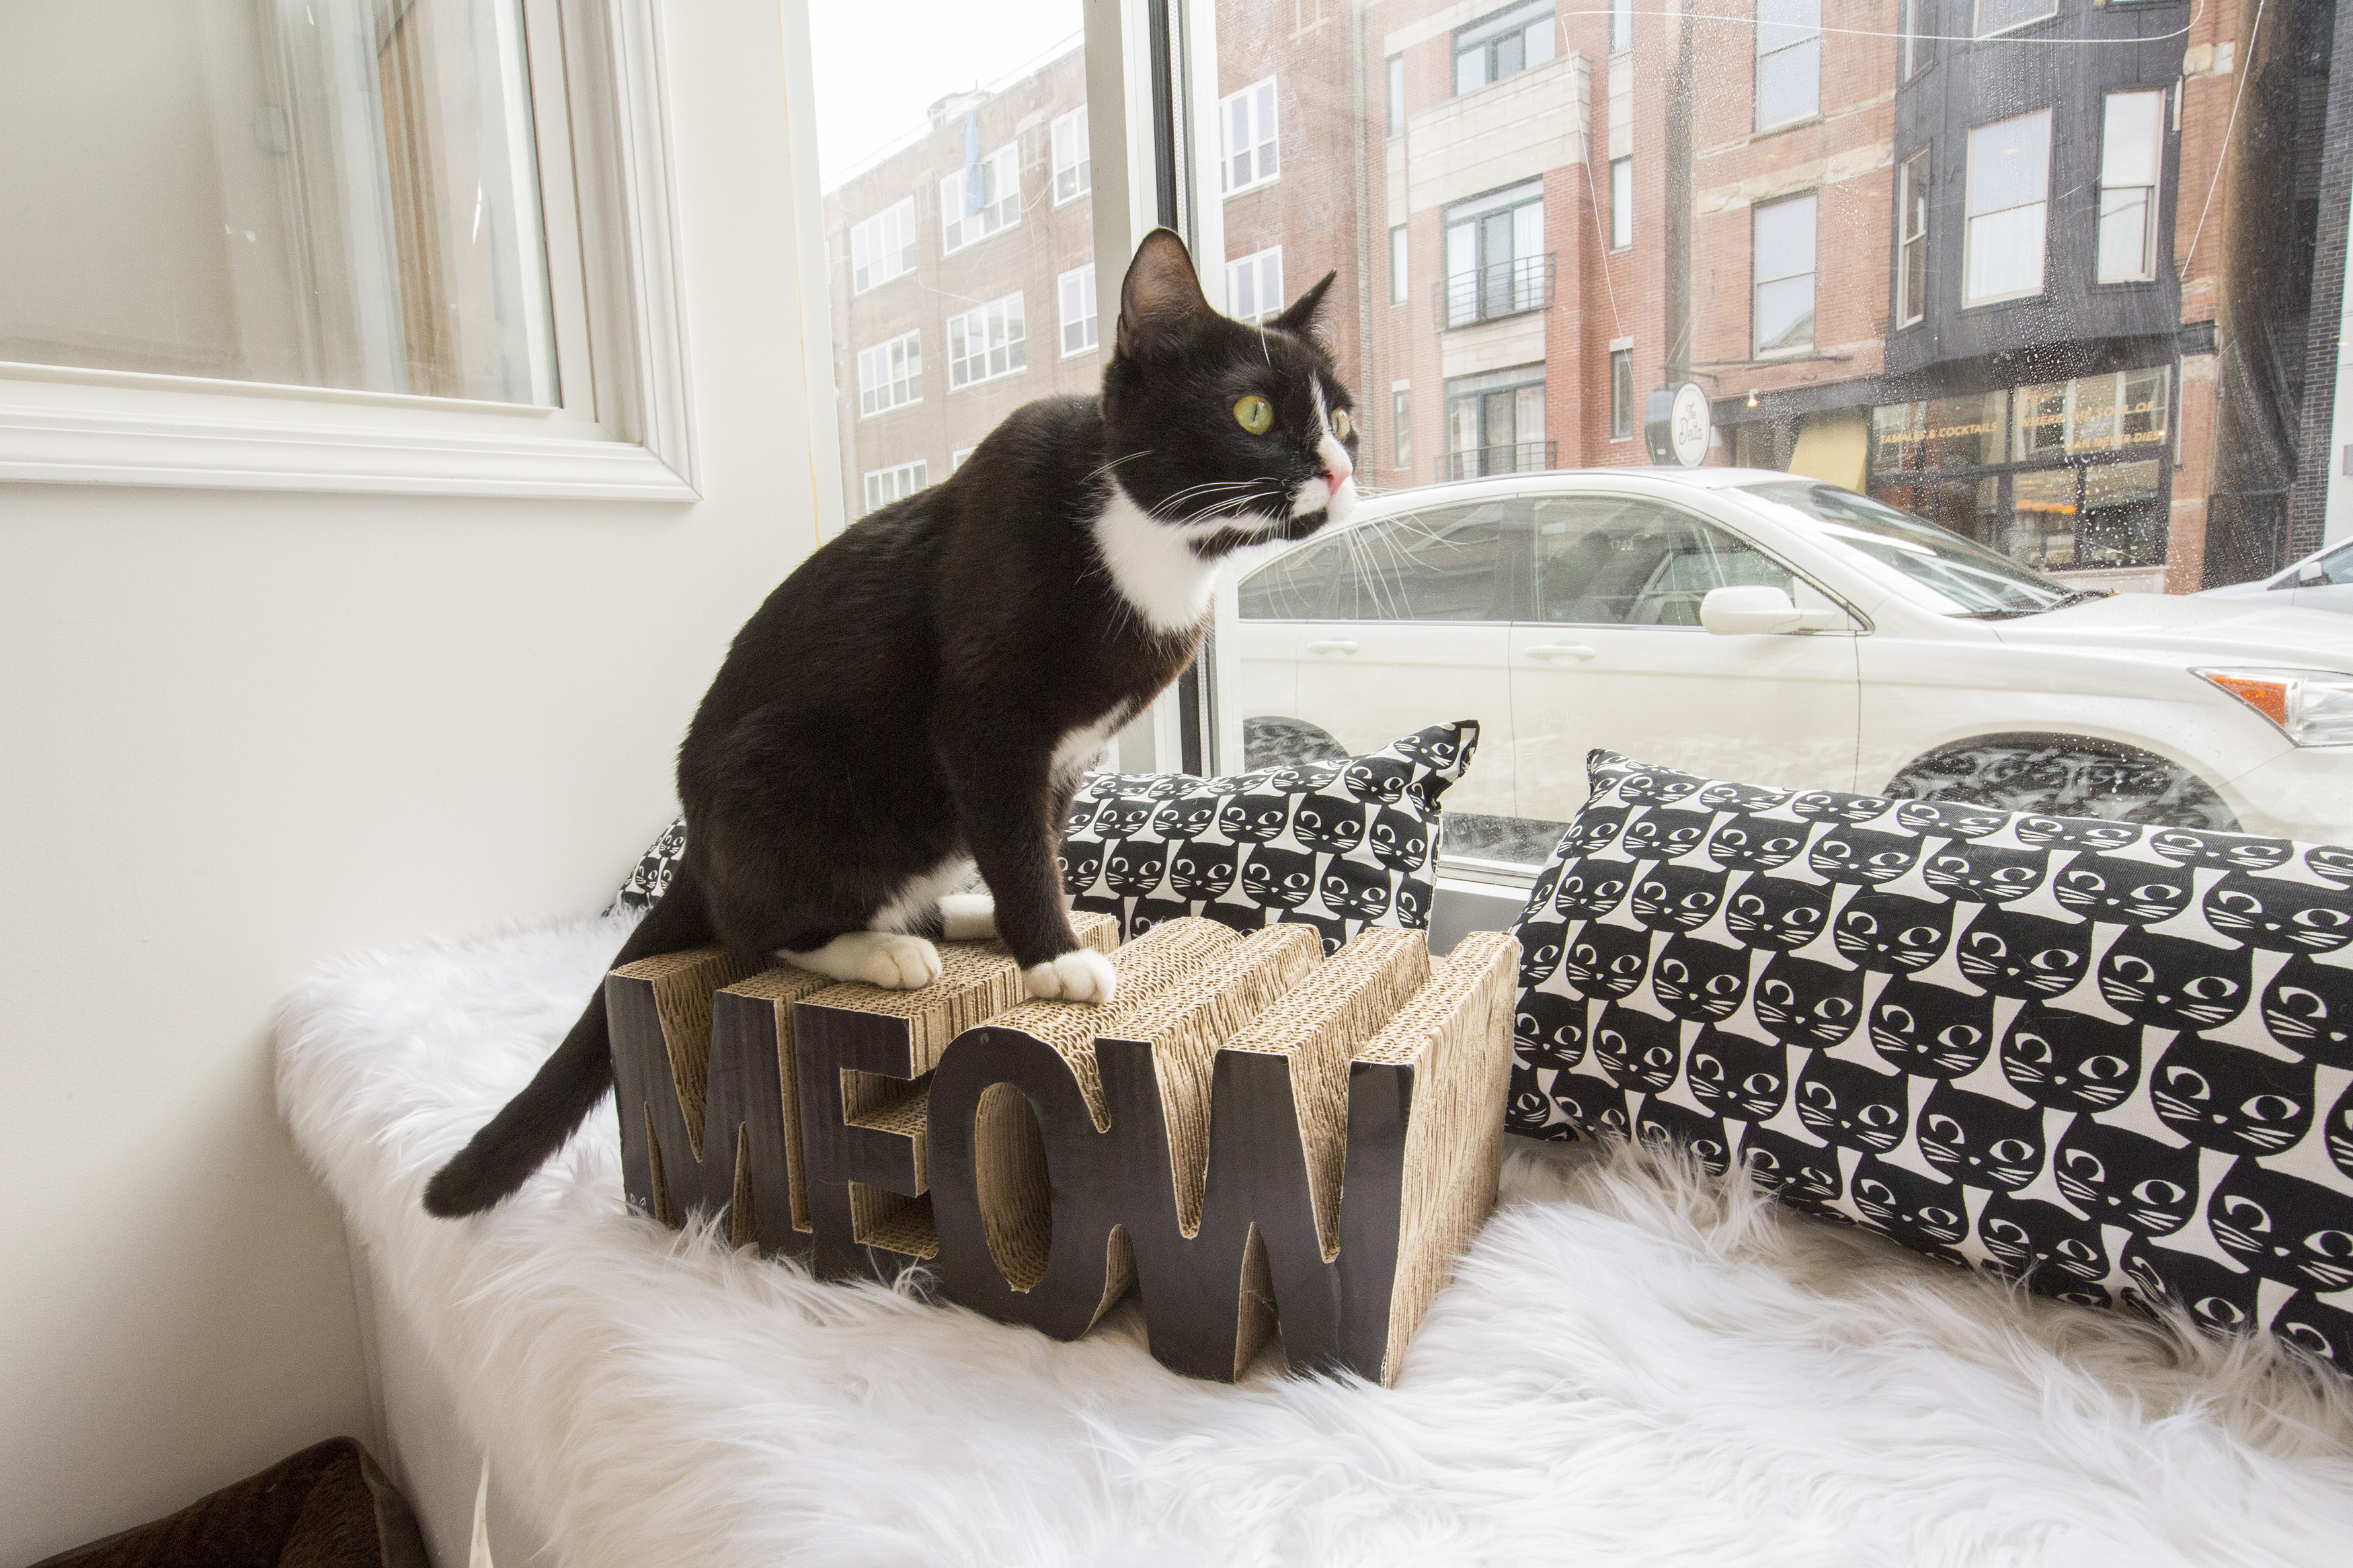 """A black and white cat sits on top of a scratching box shaped into the word """"meow"""" and looks out a window onto a Chicago street"""